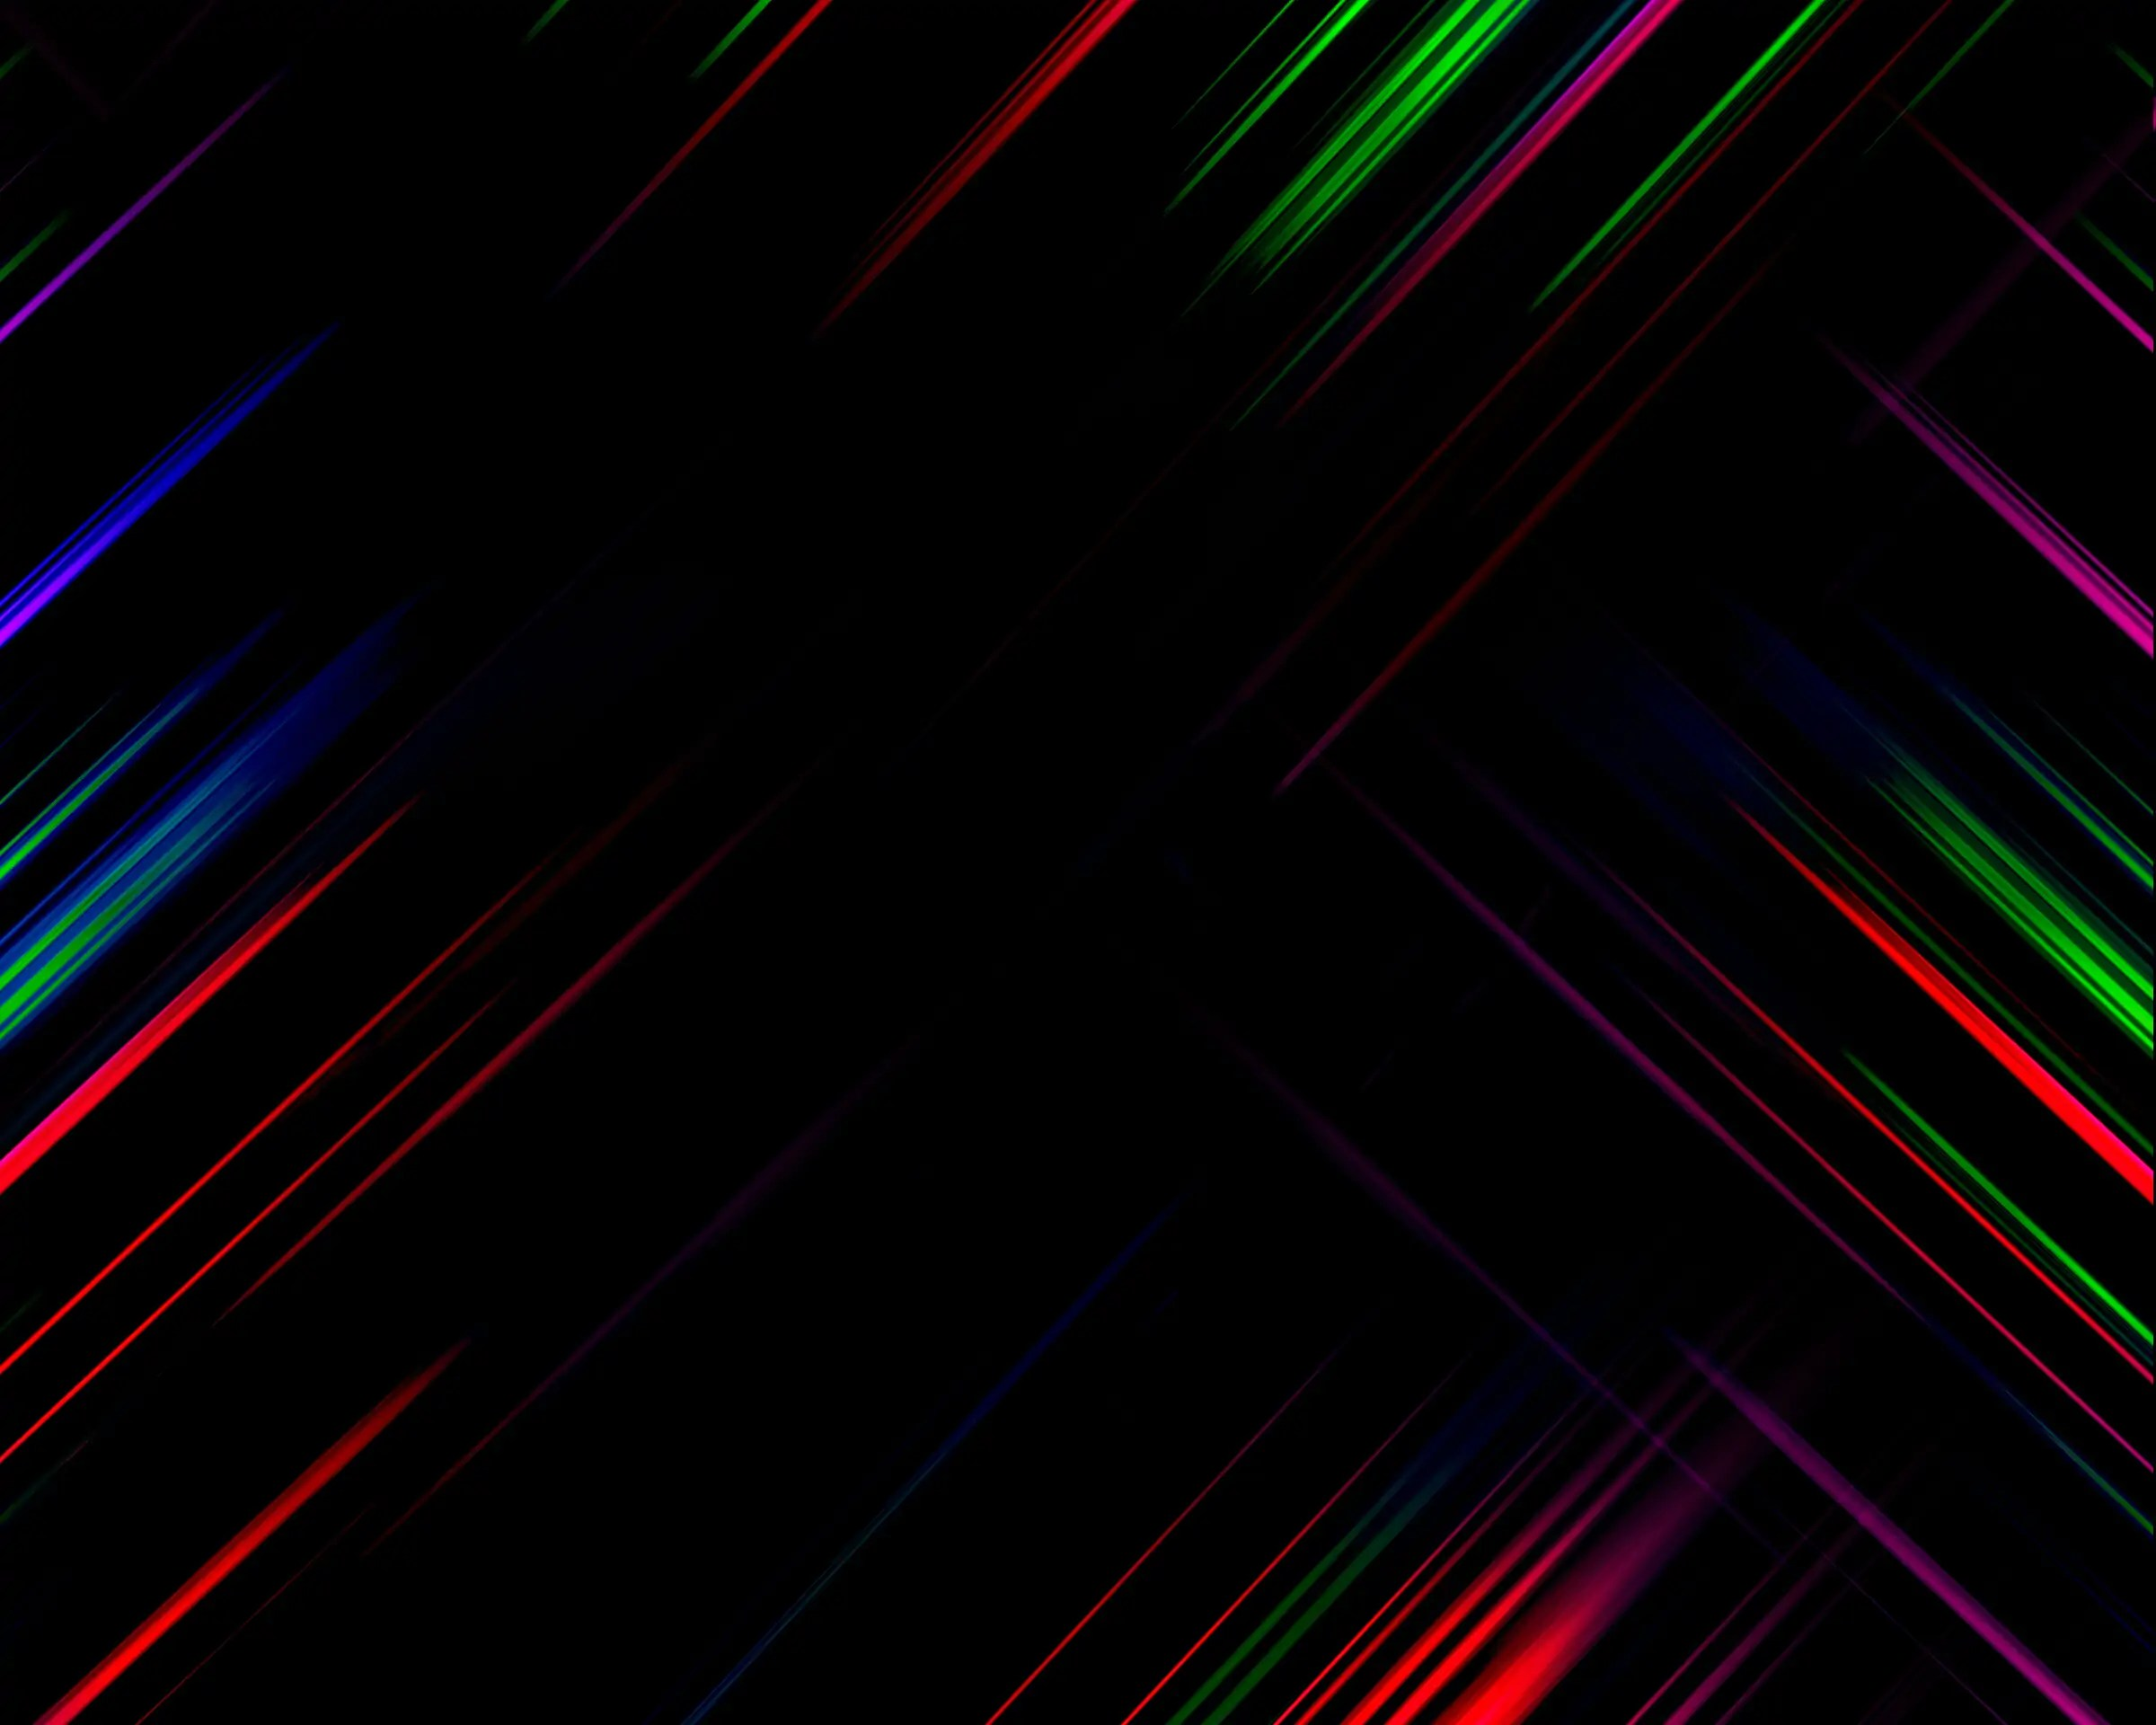 3d Laser Wallpapers 30 Wallpapers Perfect For Amoled Screens Aivanet